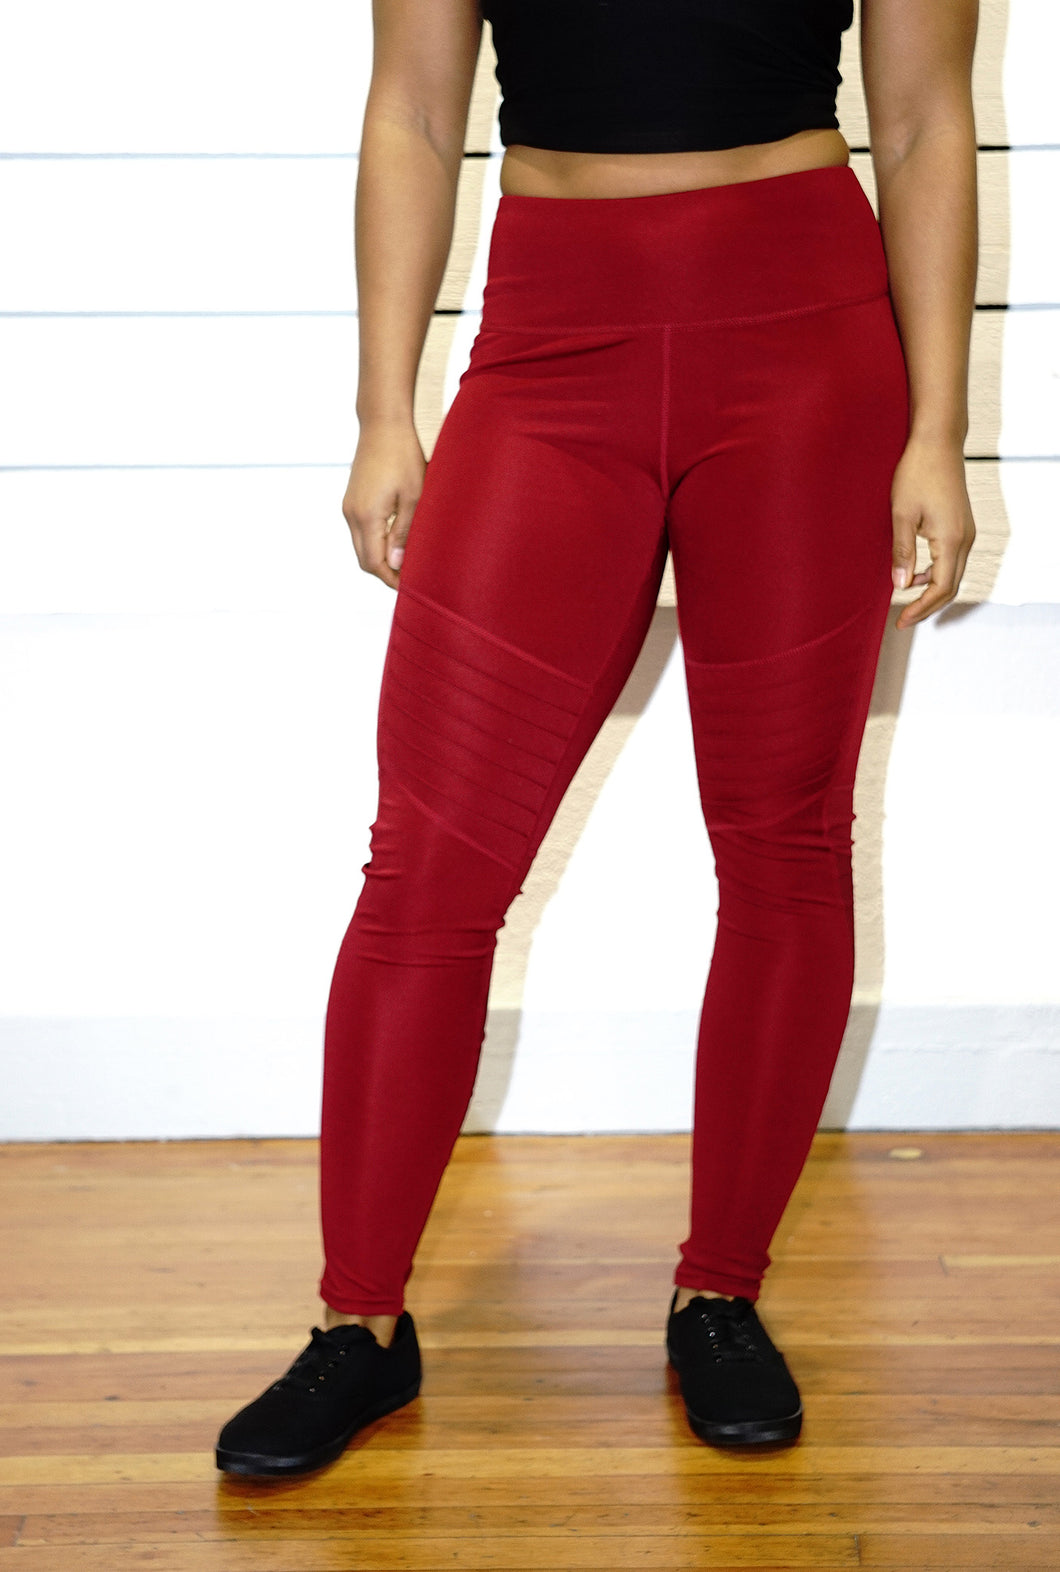 Crimson leggings